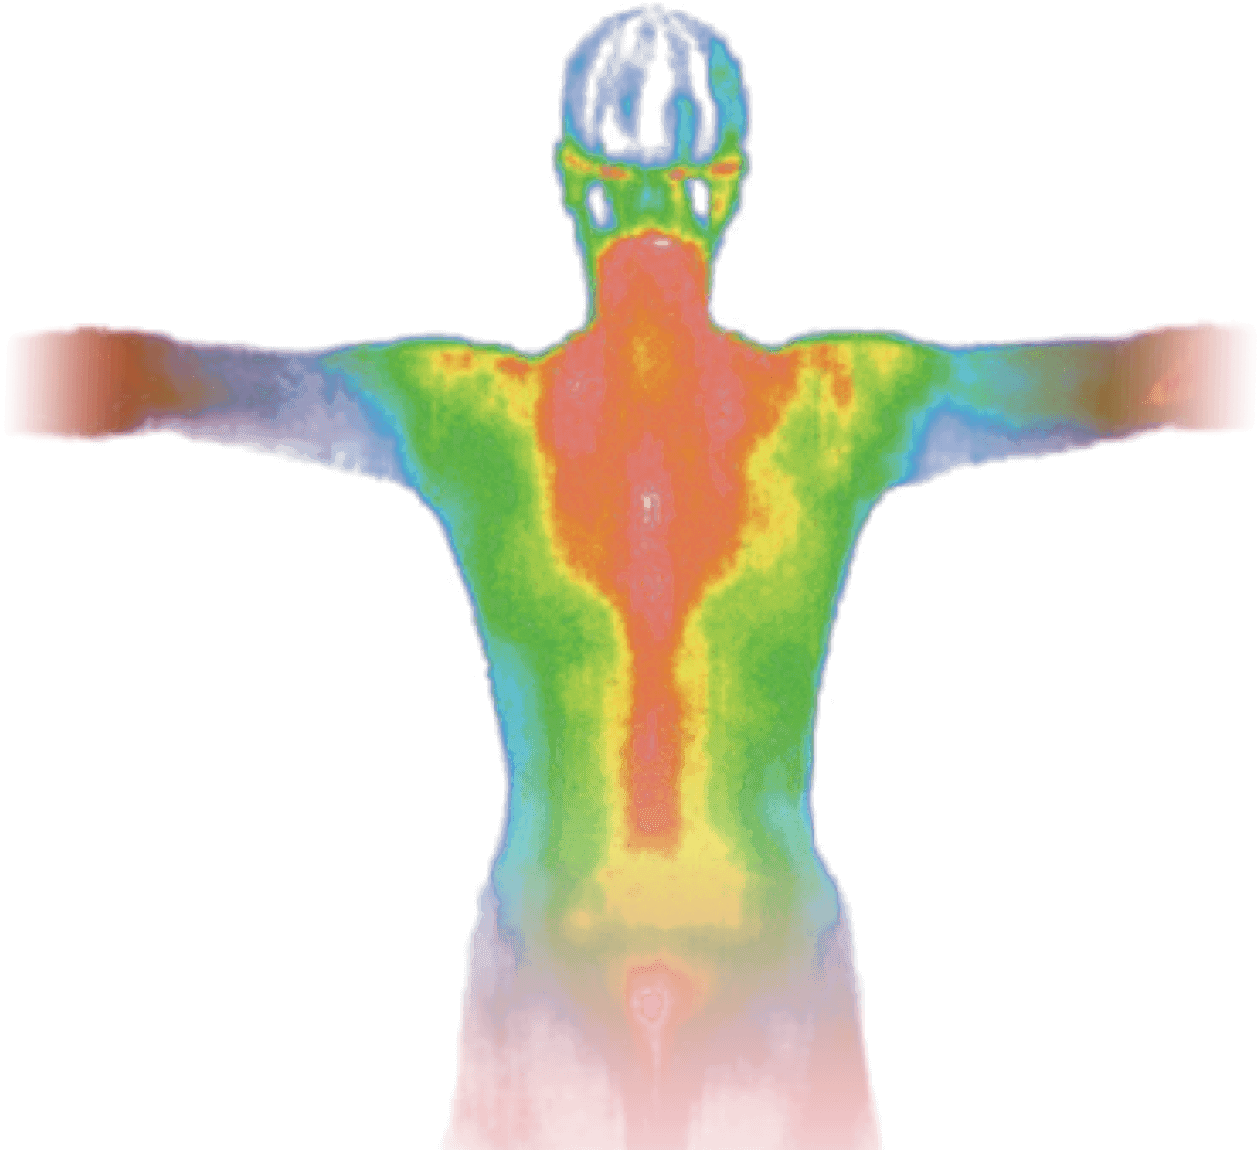 Heat map of a male torso.